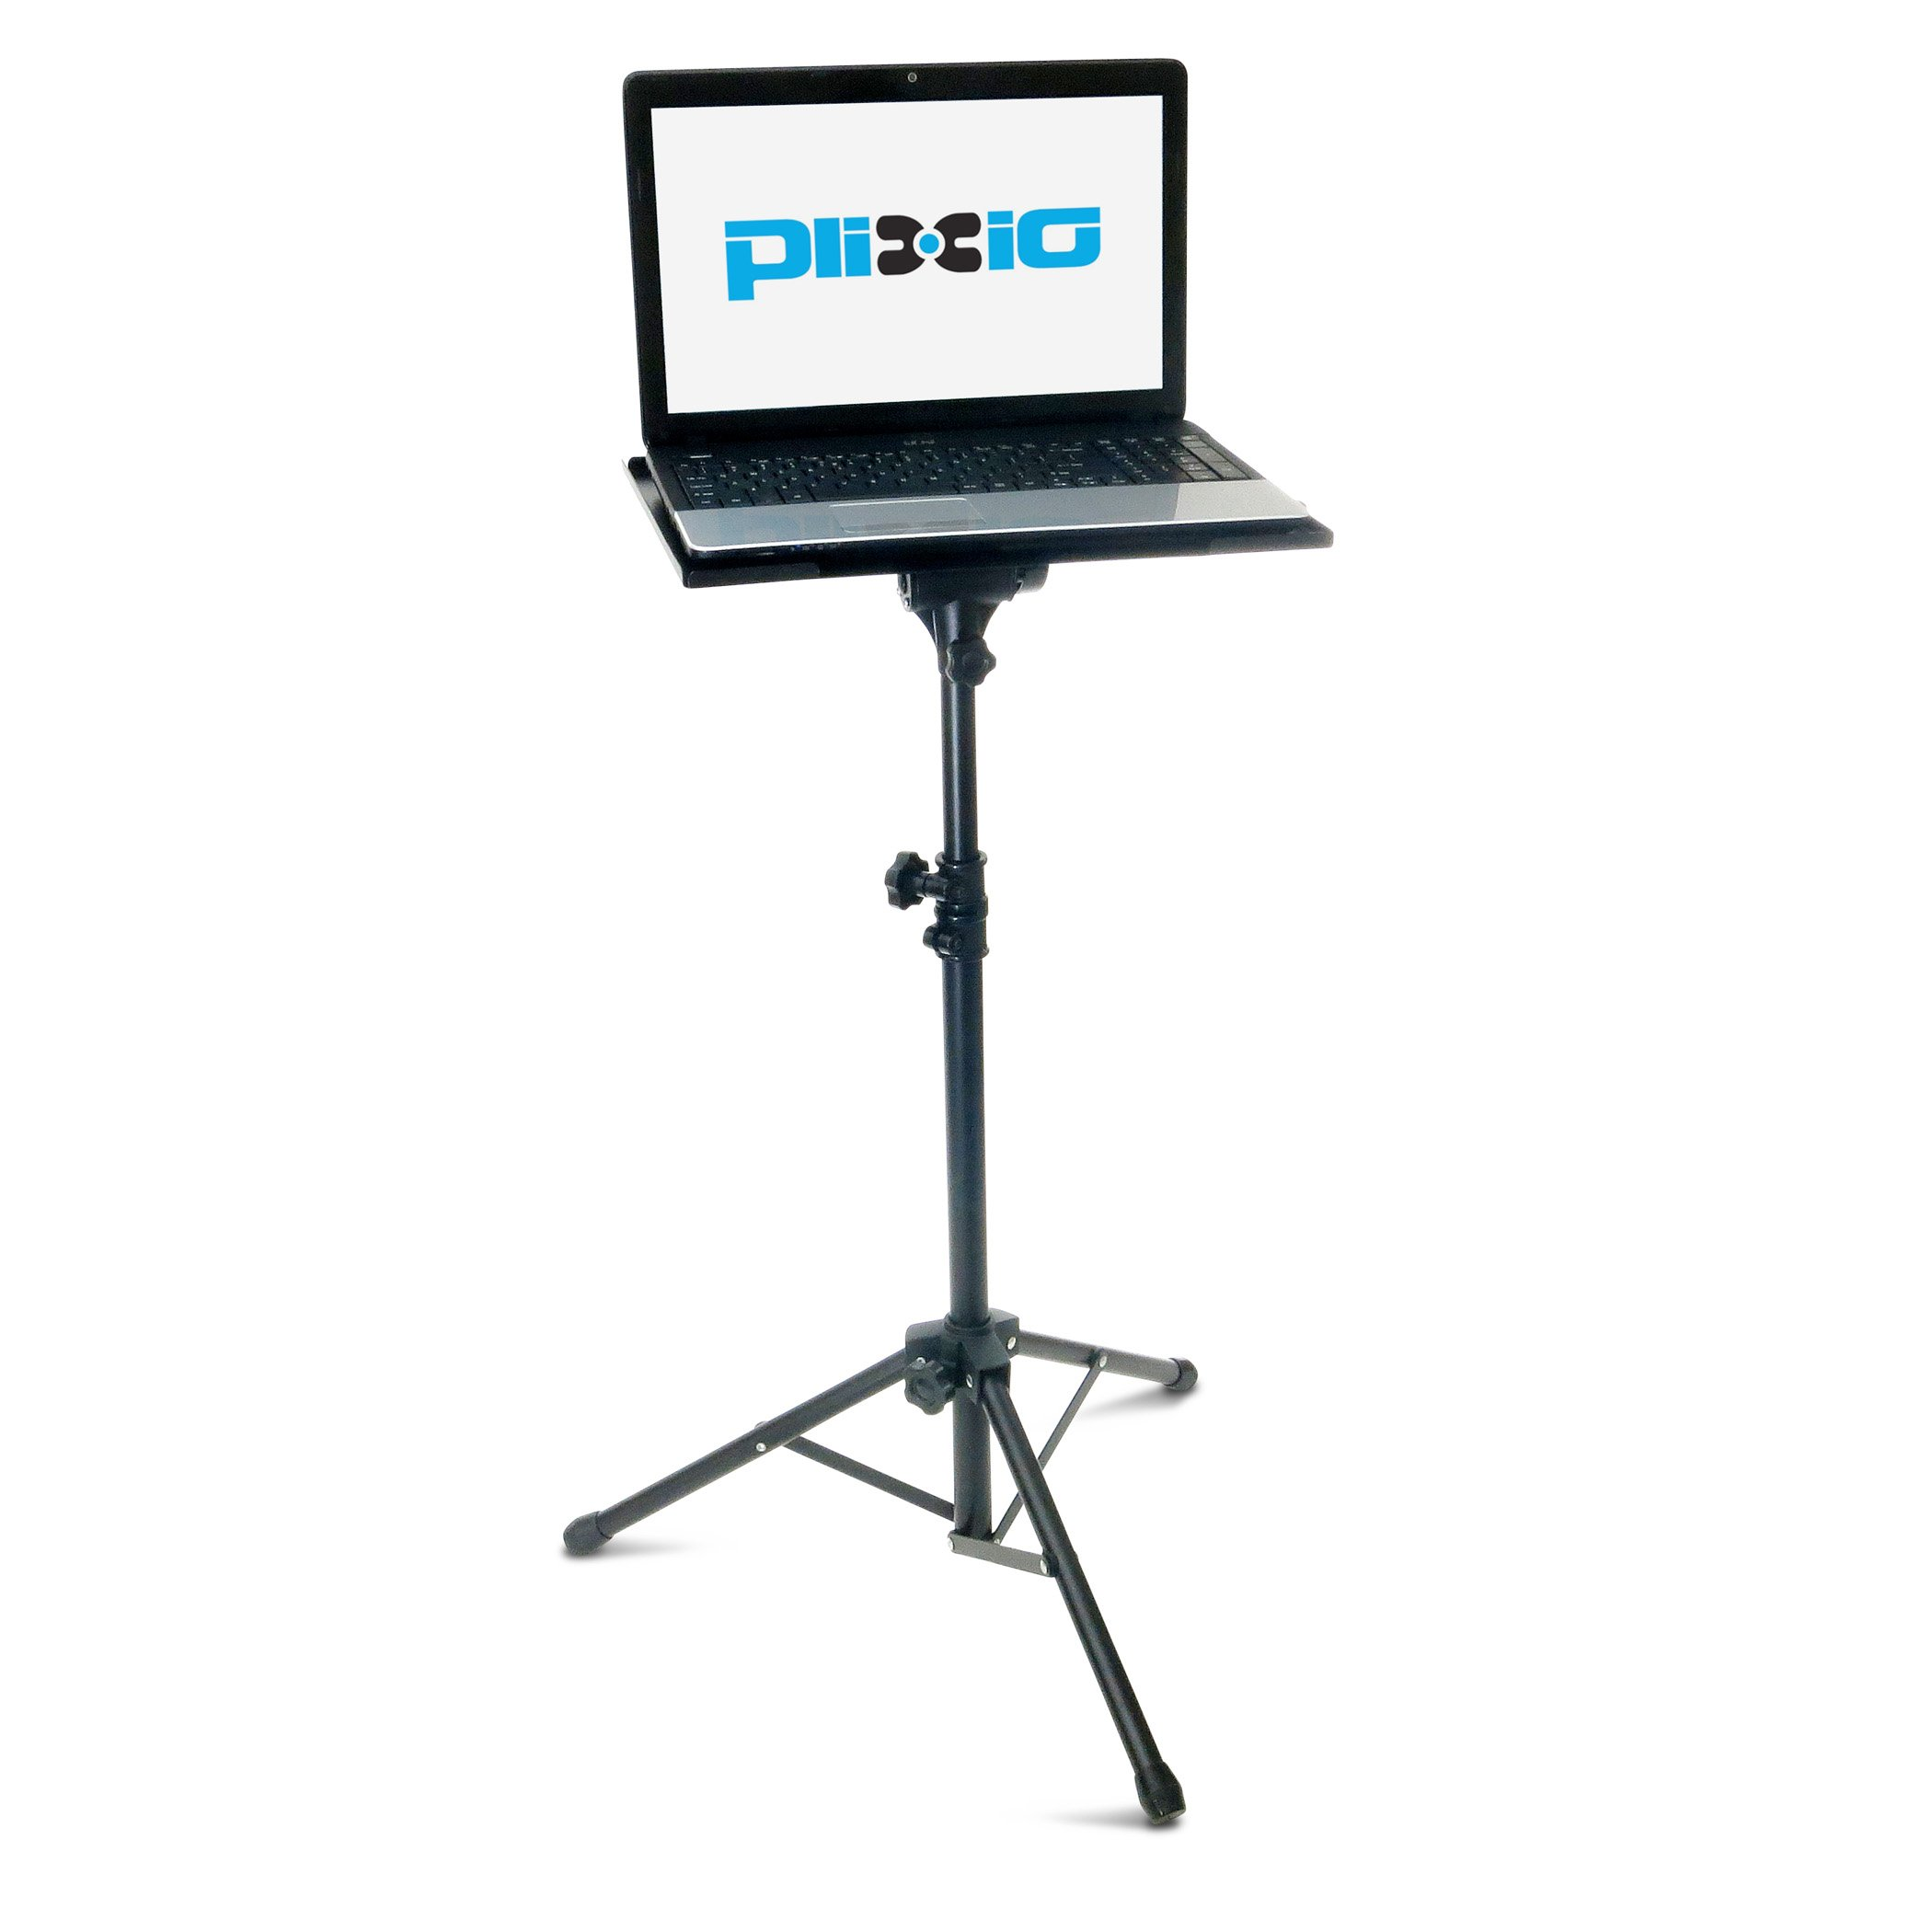 "Plixio Universal Laptop & Projector Presentation Stand— Multifunction Tripod Stand with Adjustable Height (27"" to 48"")"